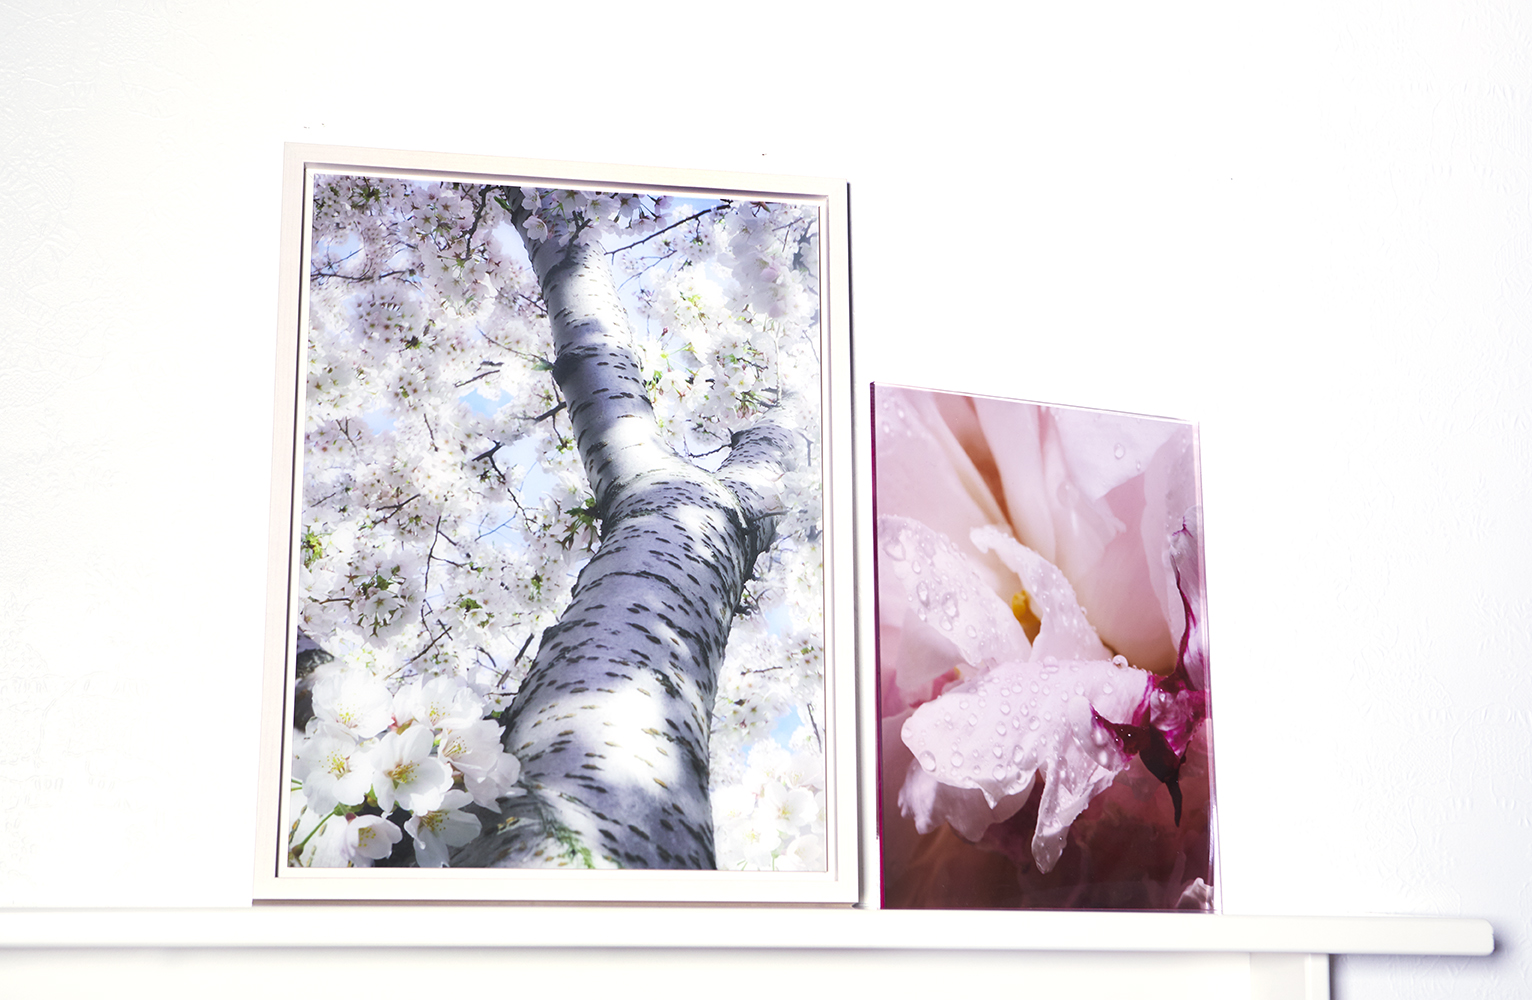 Photograph under Acrylic Glass with Floater Frame, 16.7 x 21.7 (Left)   Photograph under Pink Plexi, 11 x 14 (Right)